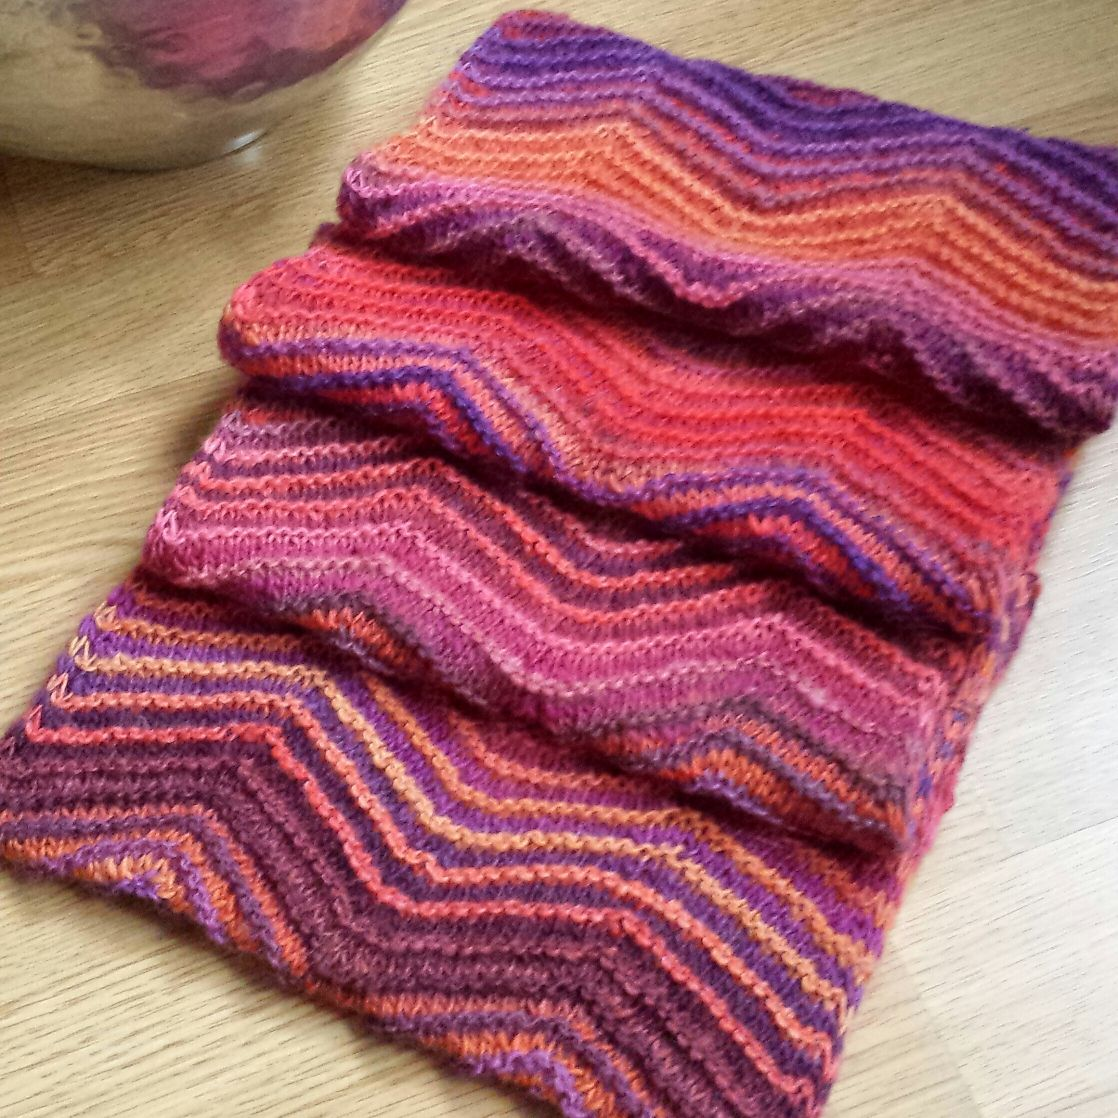 Free Knitting Pattern - Cowls and Neck Warmers: Chevrons All Round ...